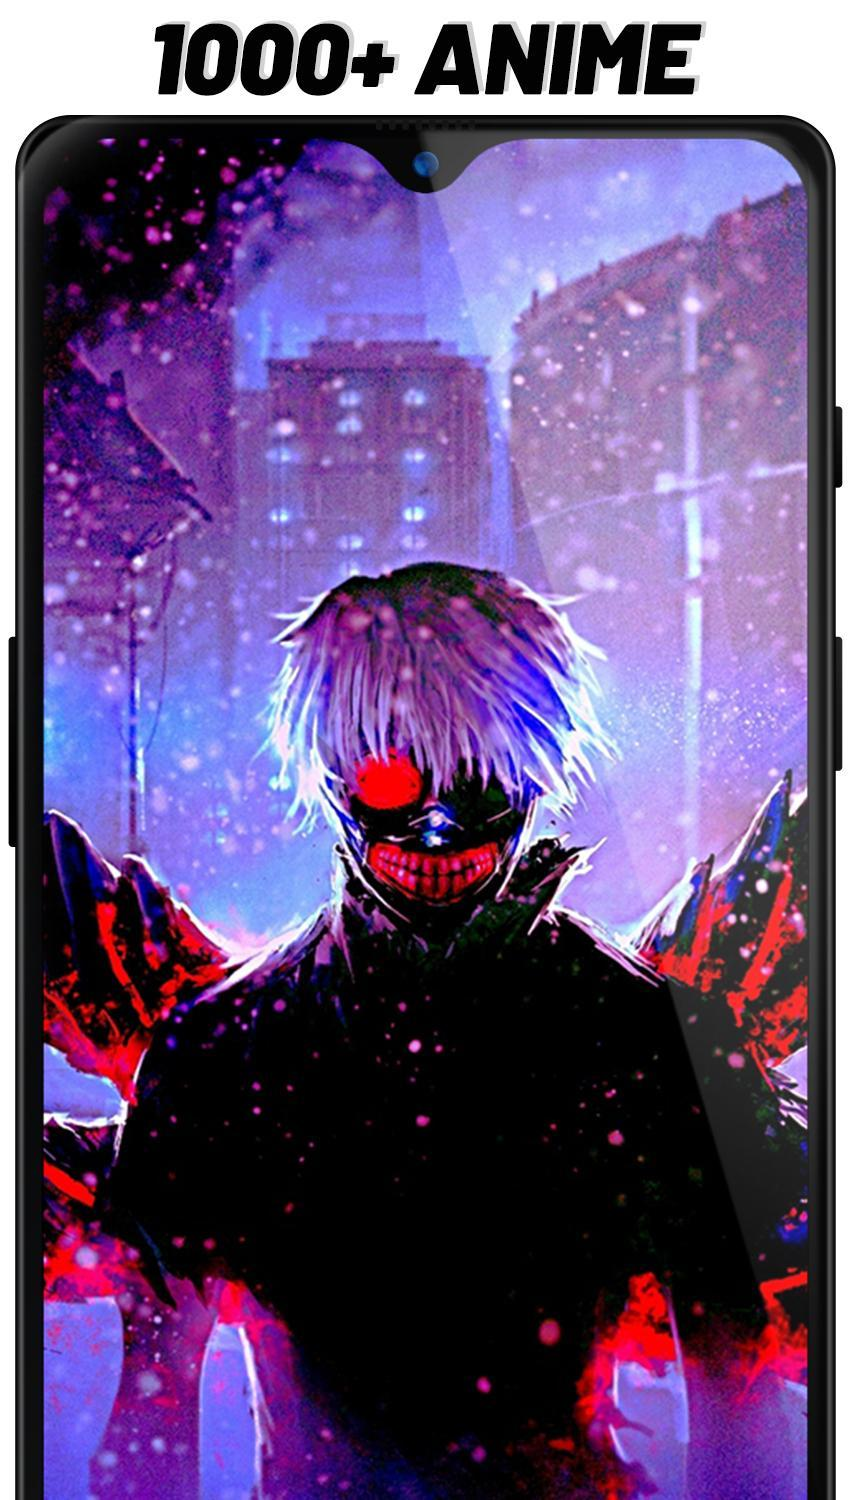 ANIME Live Wallpapers for Android - APK Download